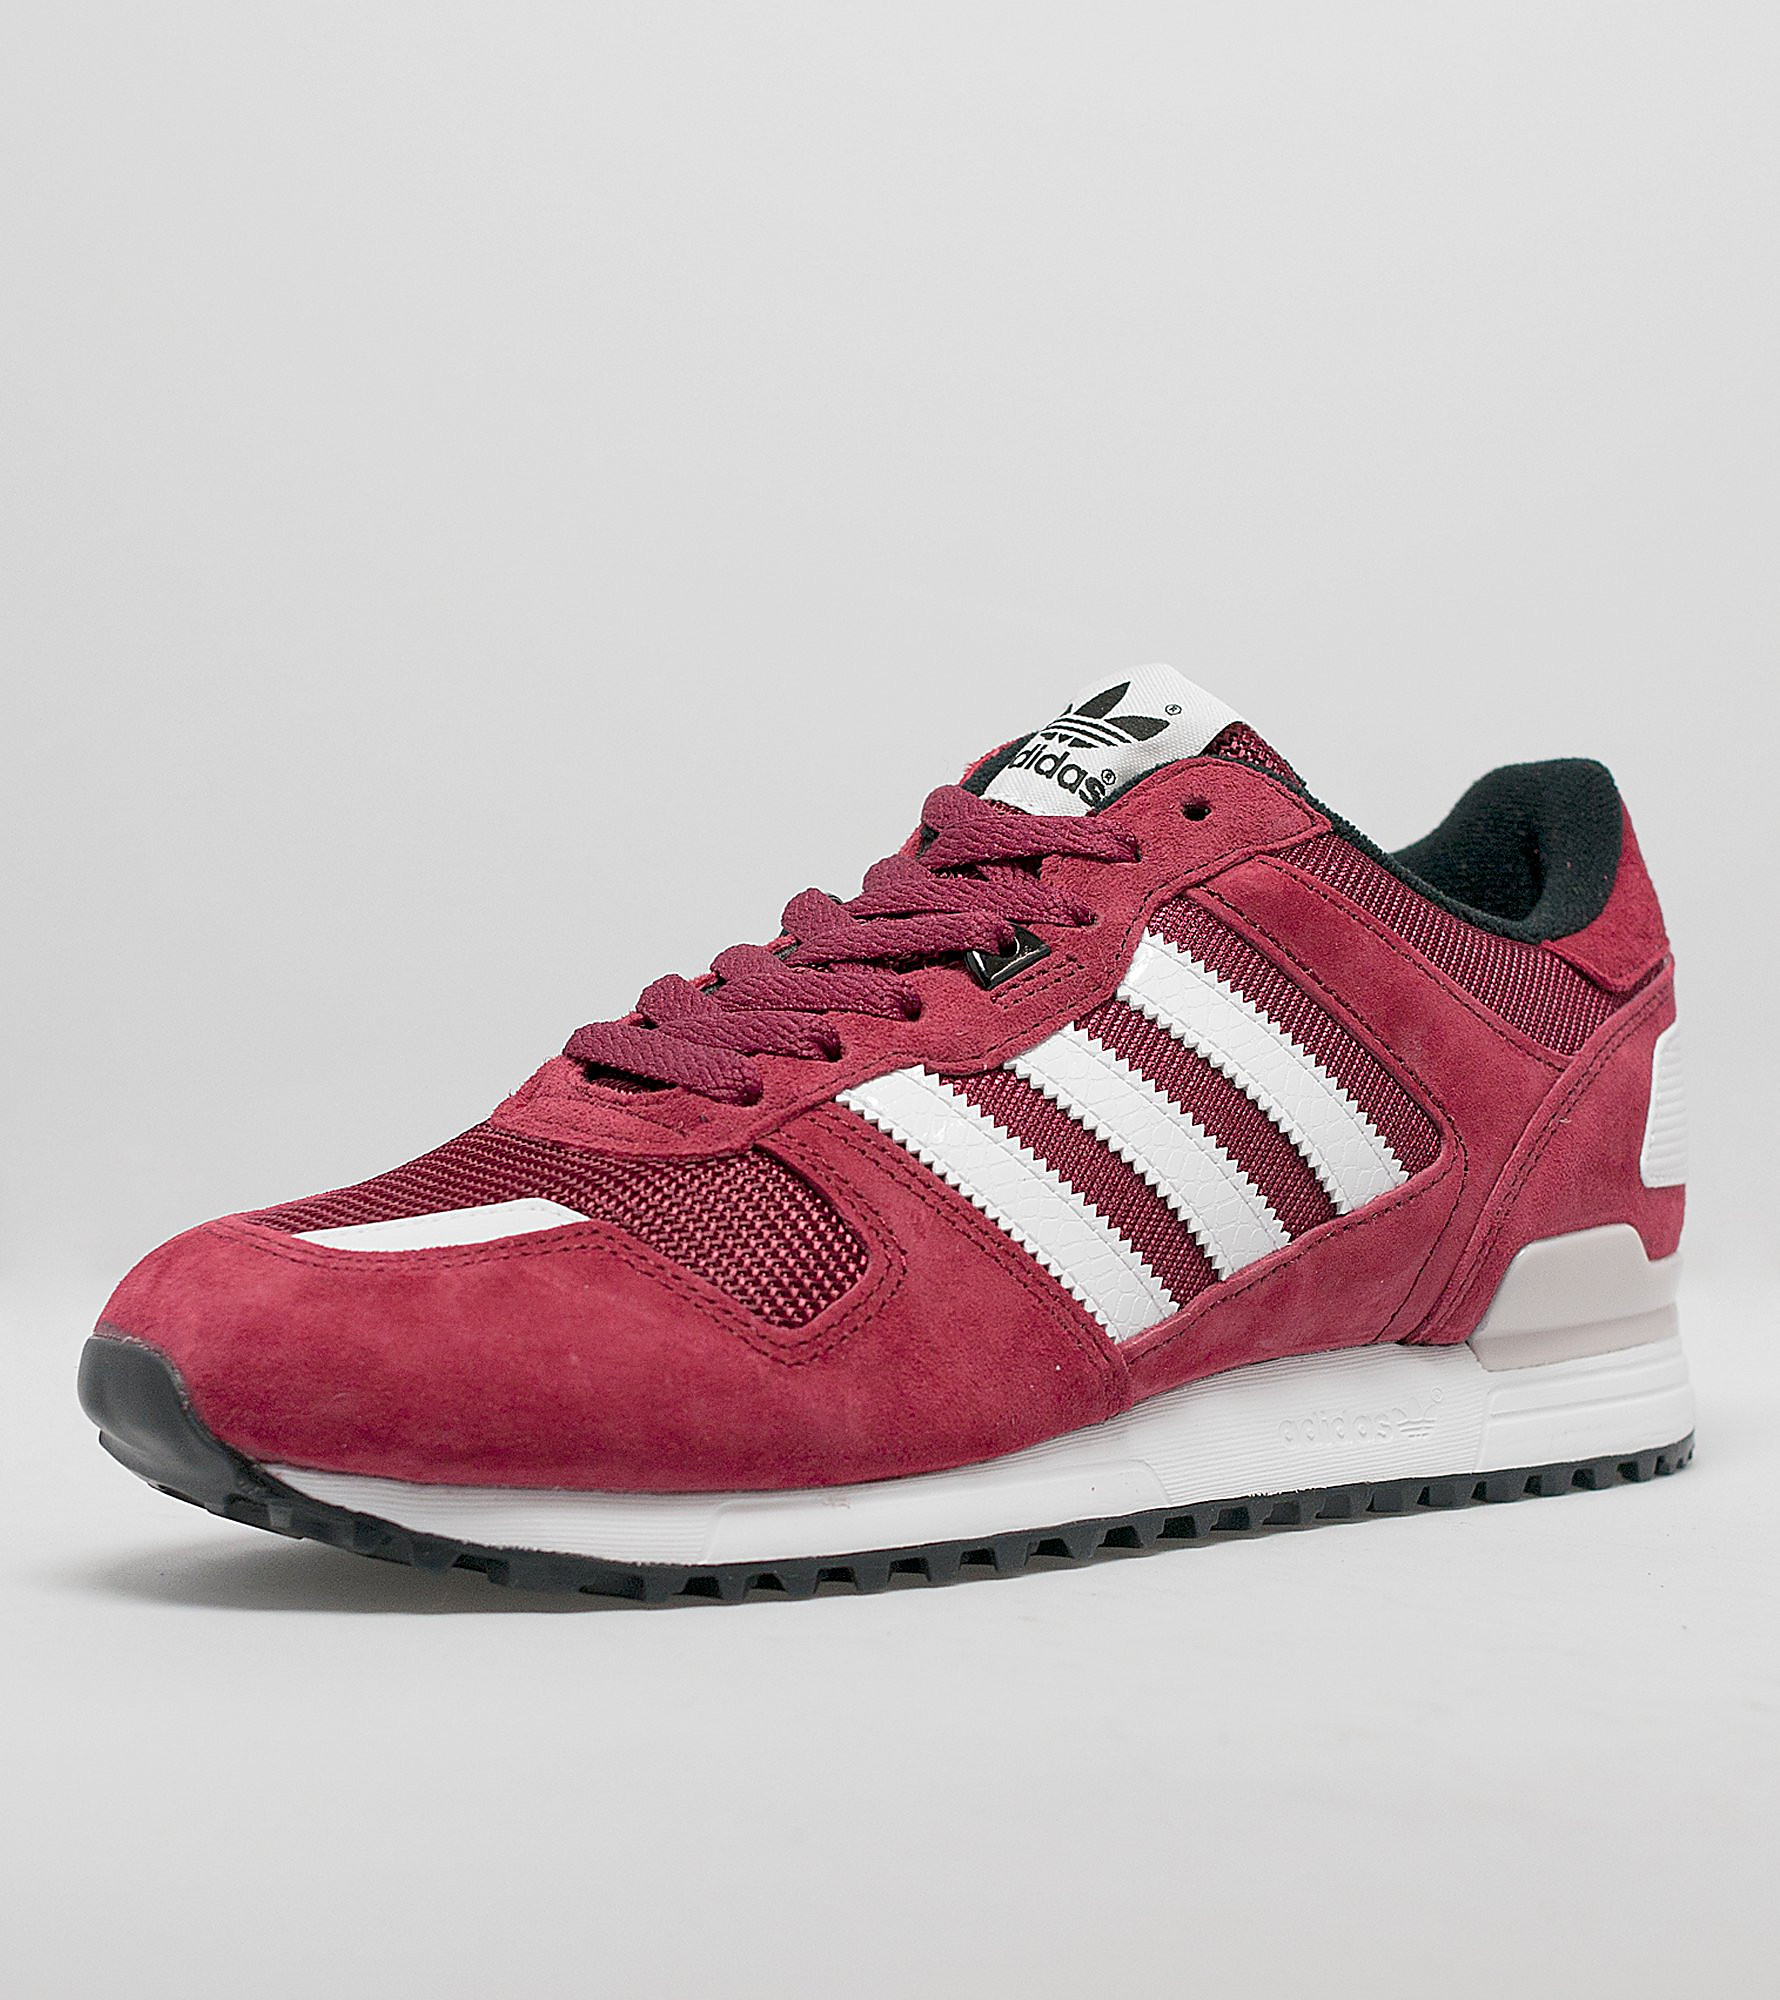 best service eef3c 32308 ... though, and having the best type of shoes will make all the huge  difference in finding you through that. Buy men s adidas originals tubular  radial - aq ...